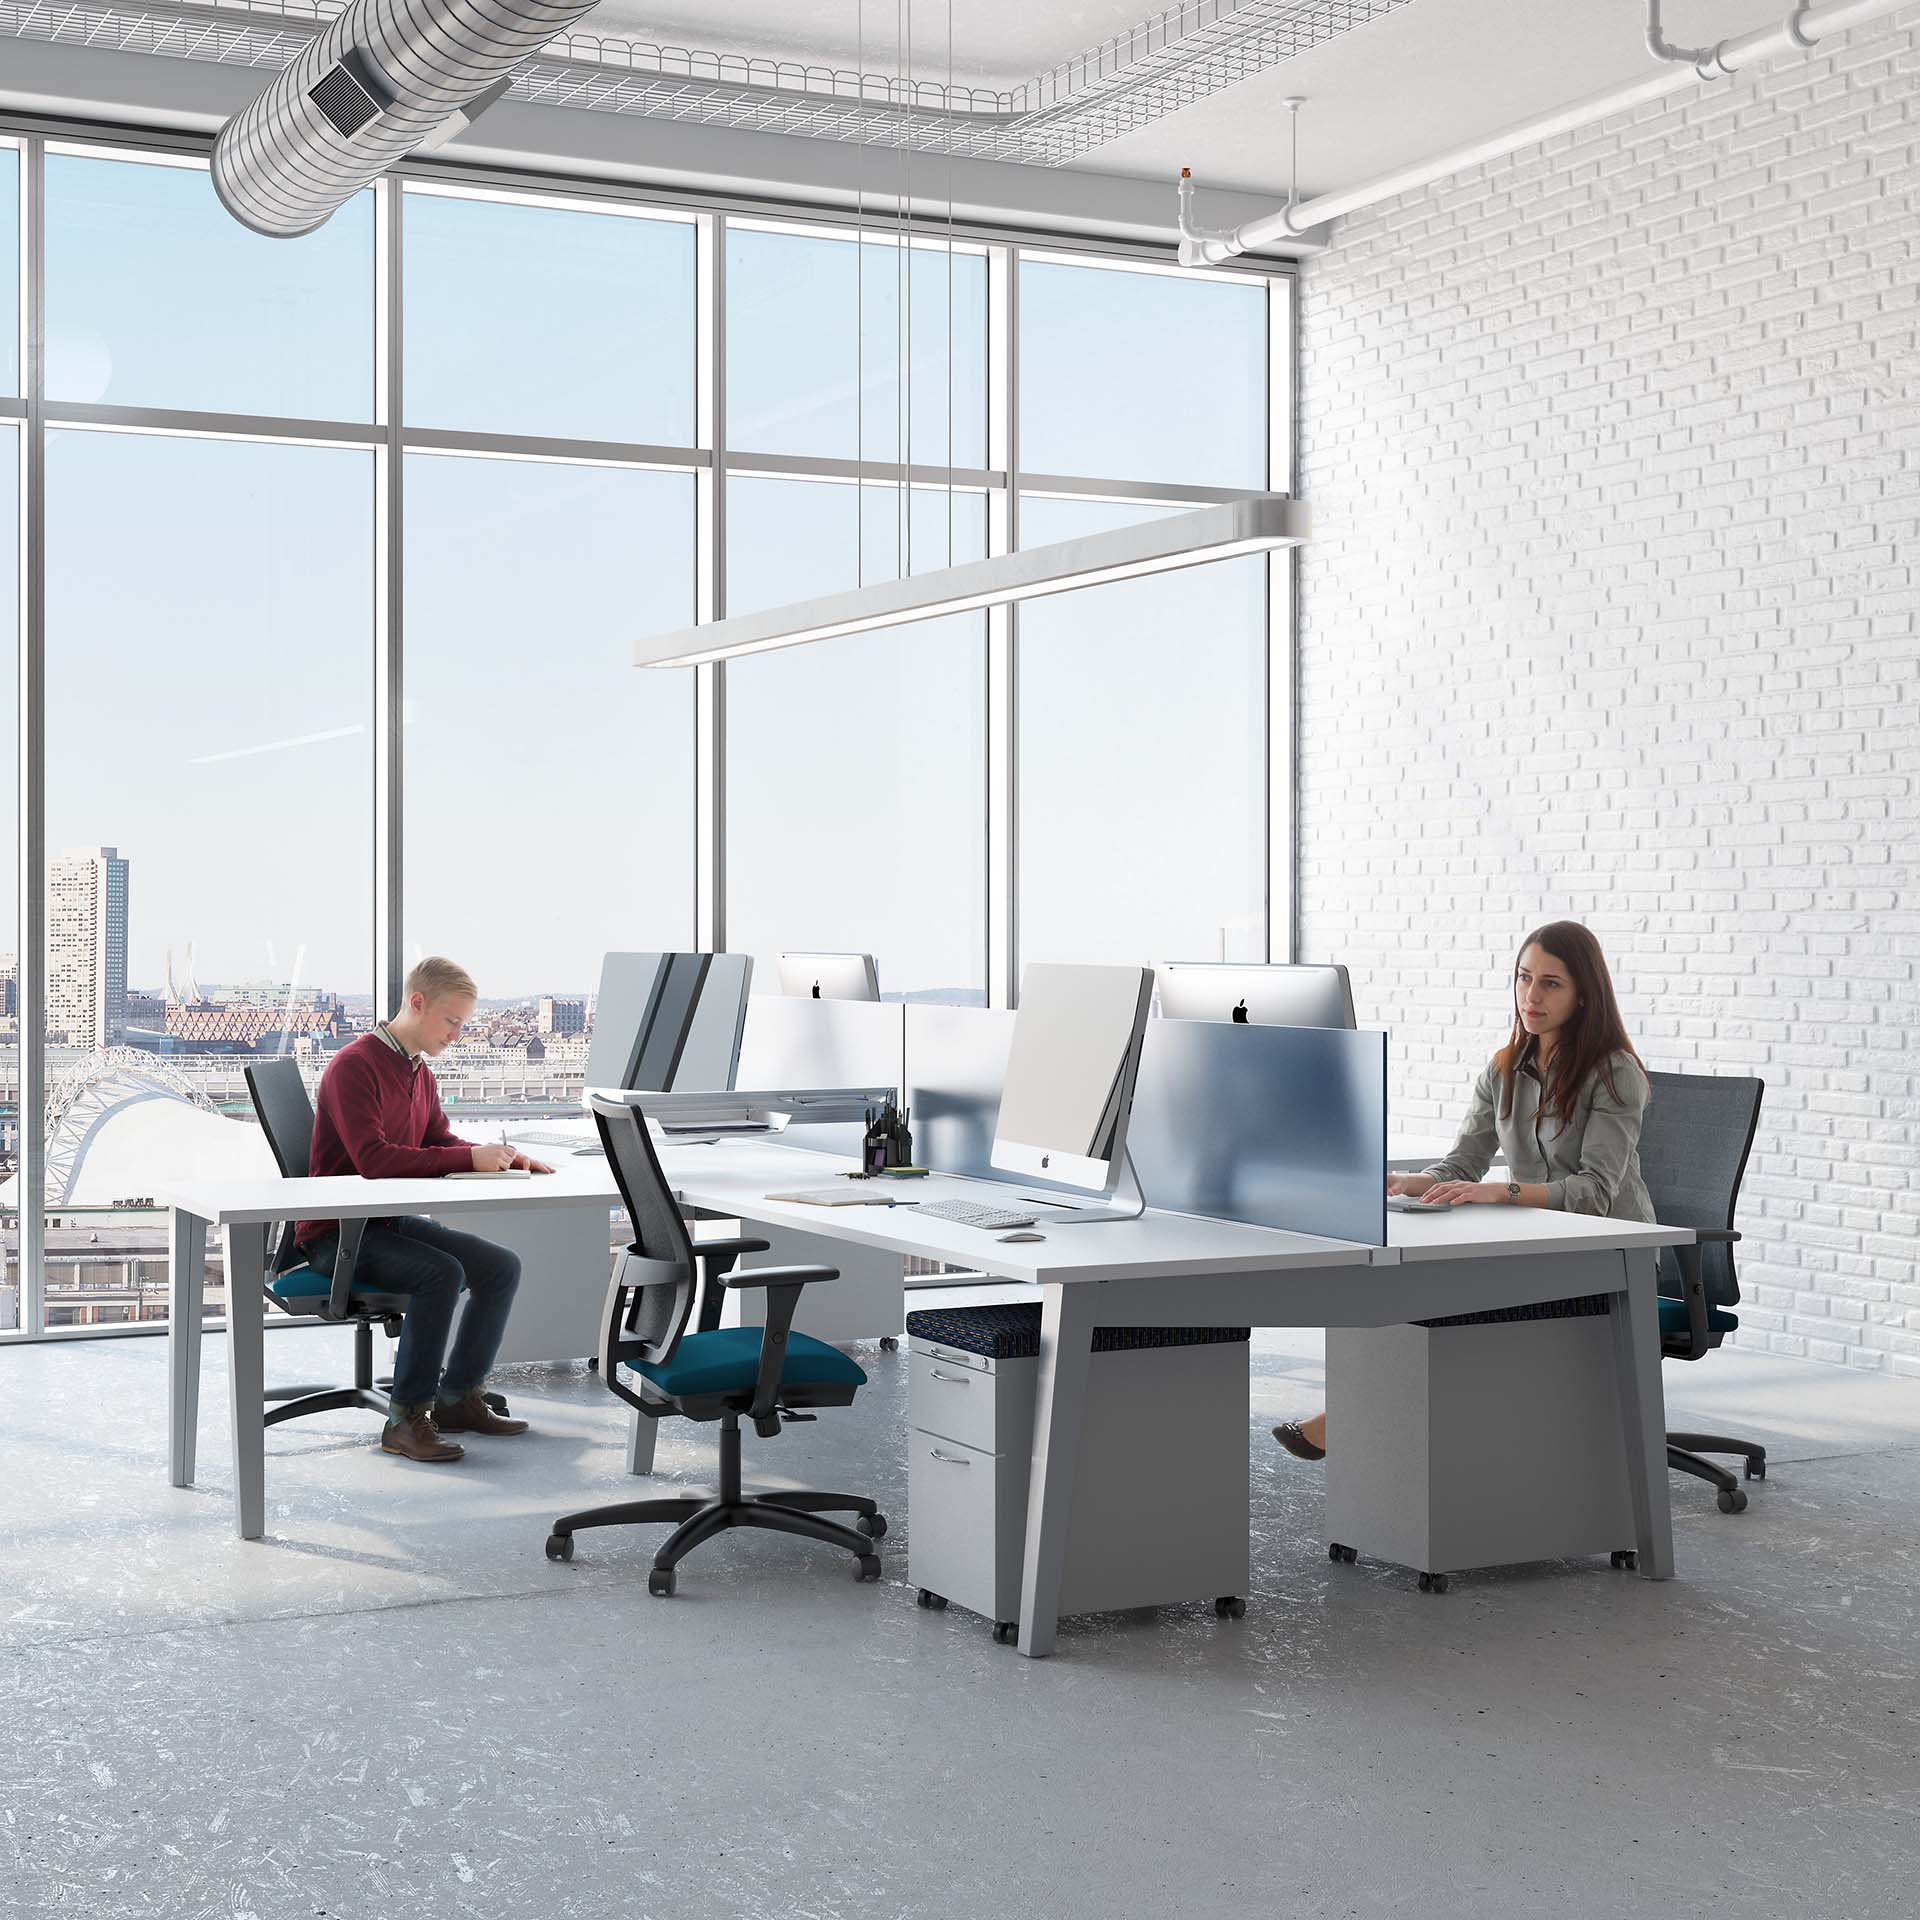 office chairs unlimited velvet lounge chair workstations